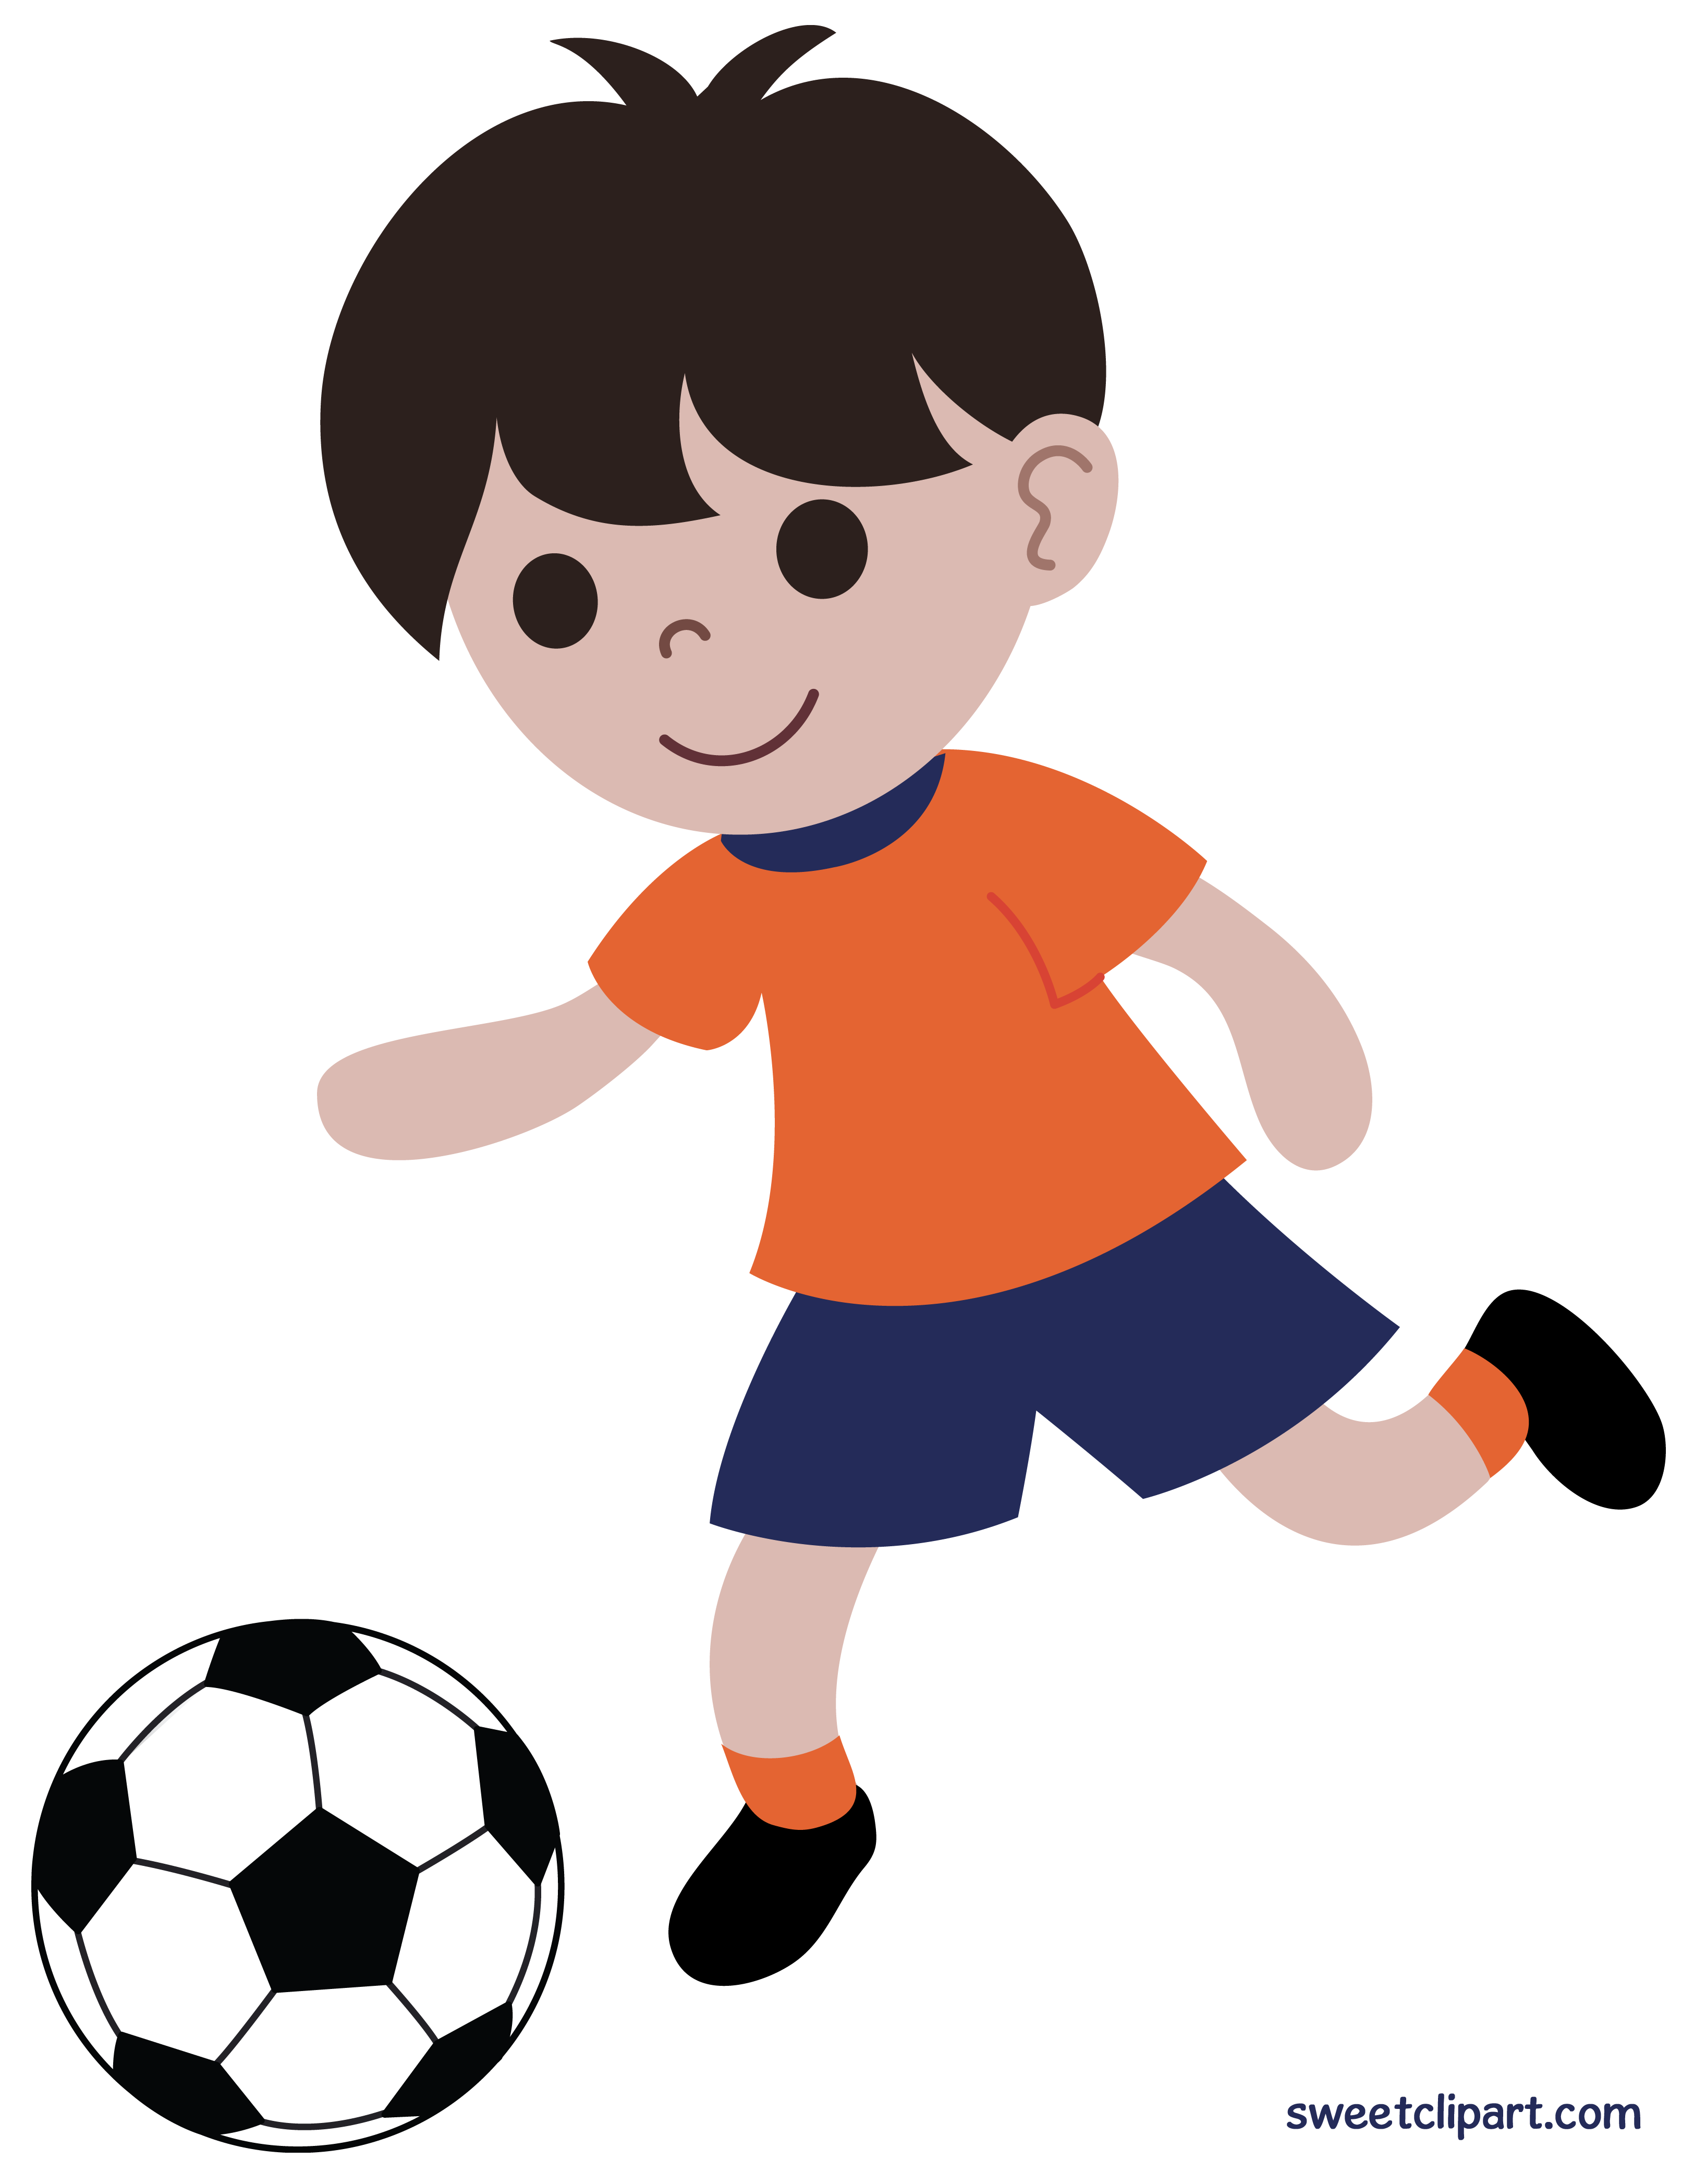 3249x4188 Boy Playing Soccer Or Football Clip Art